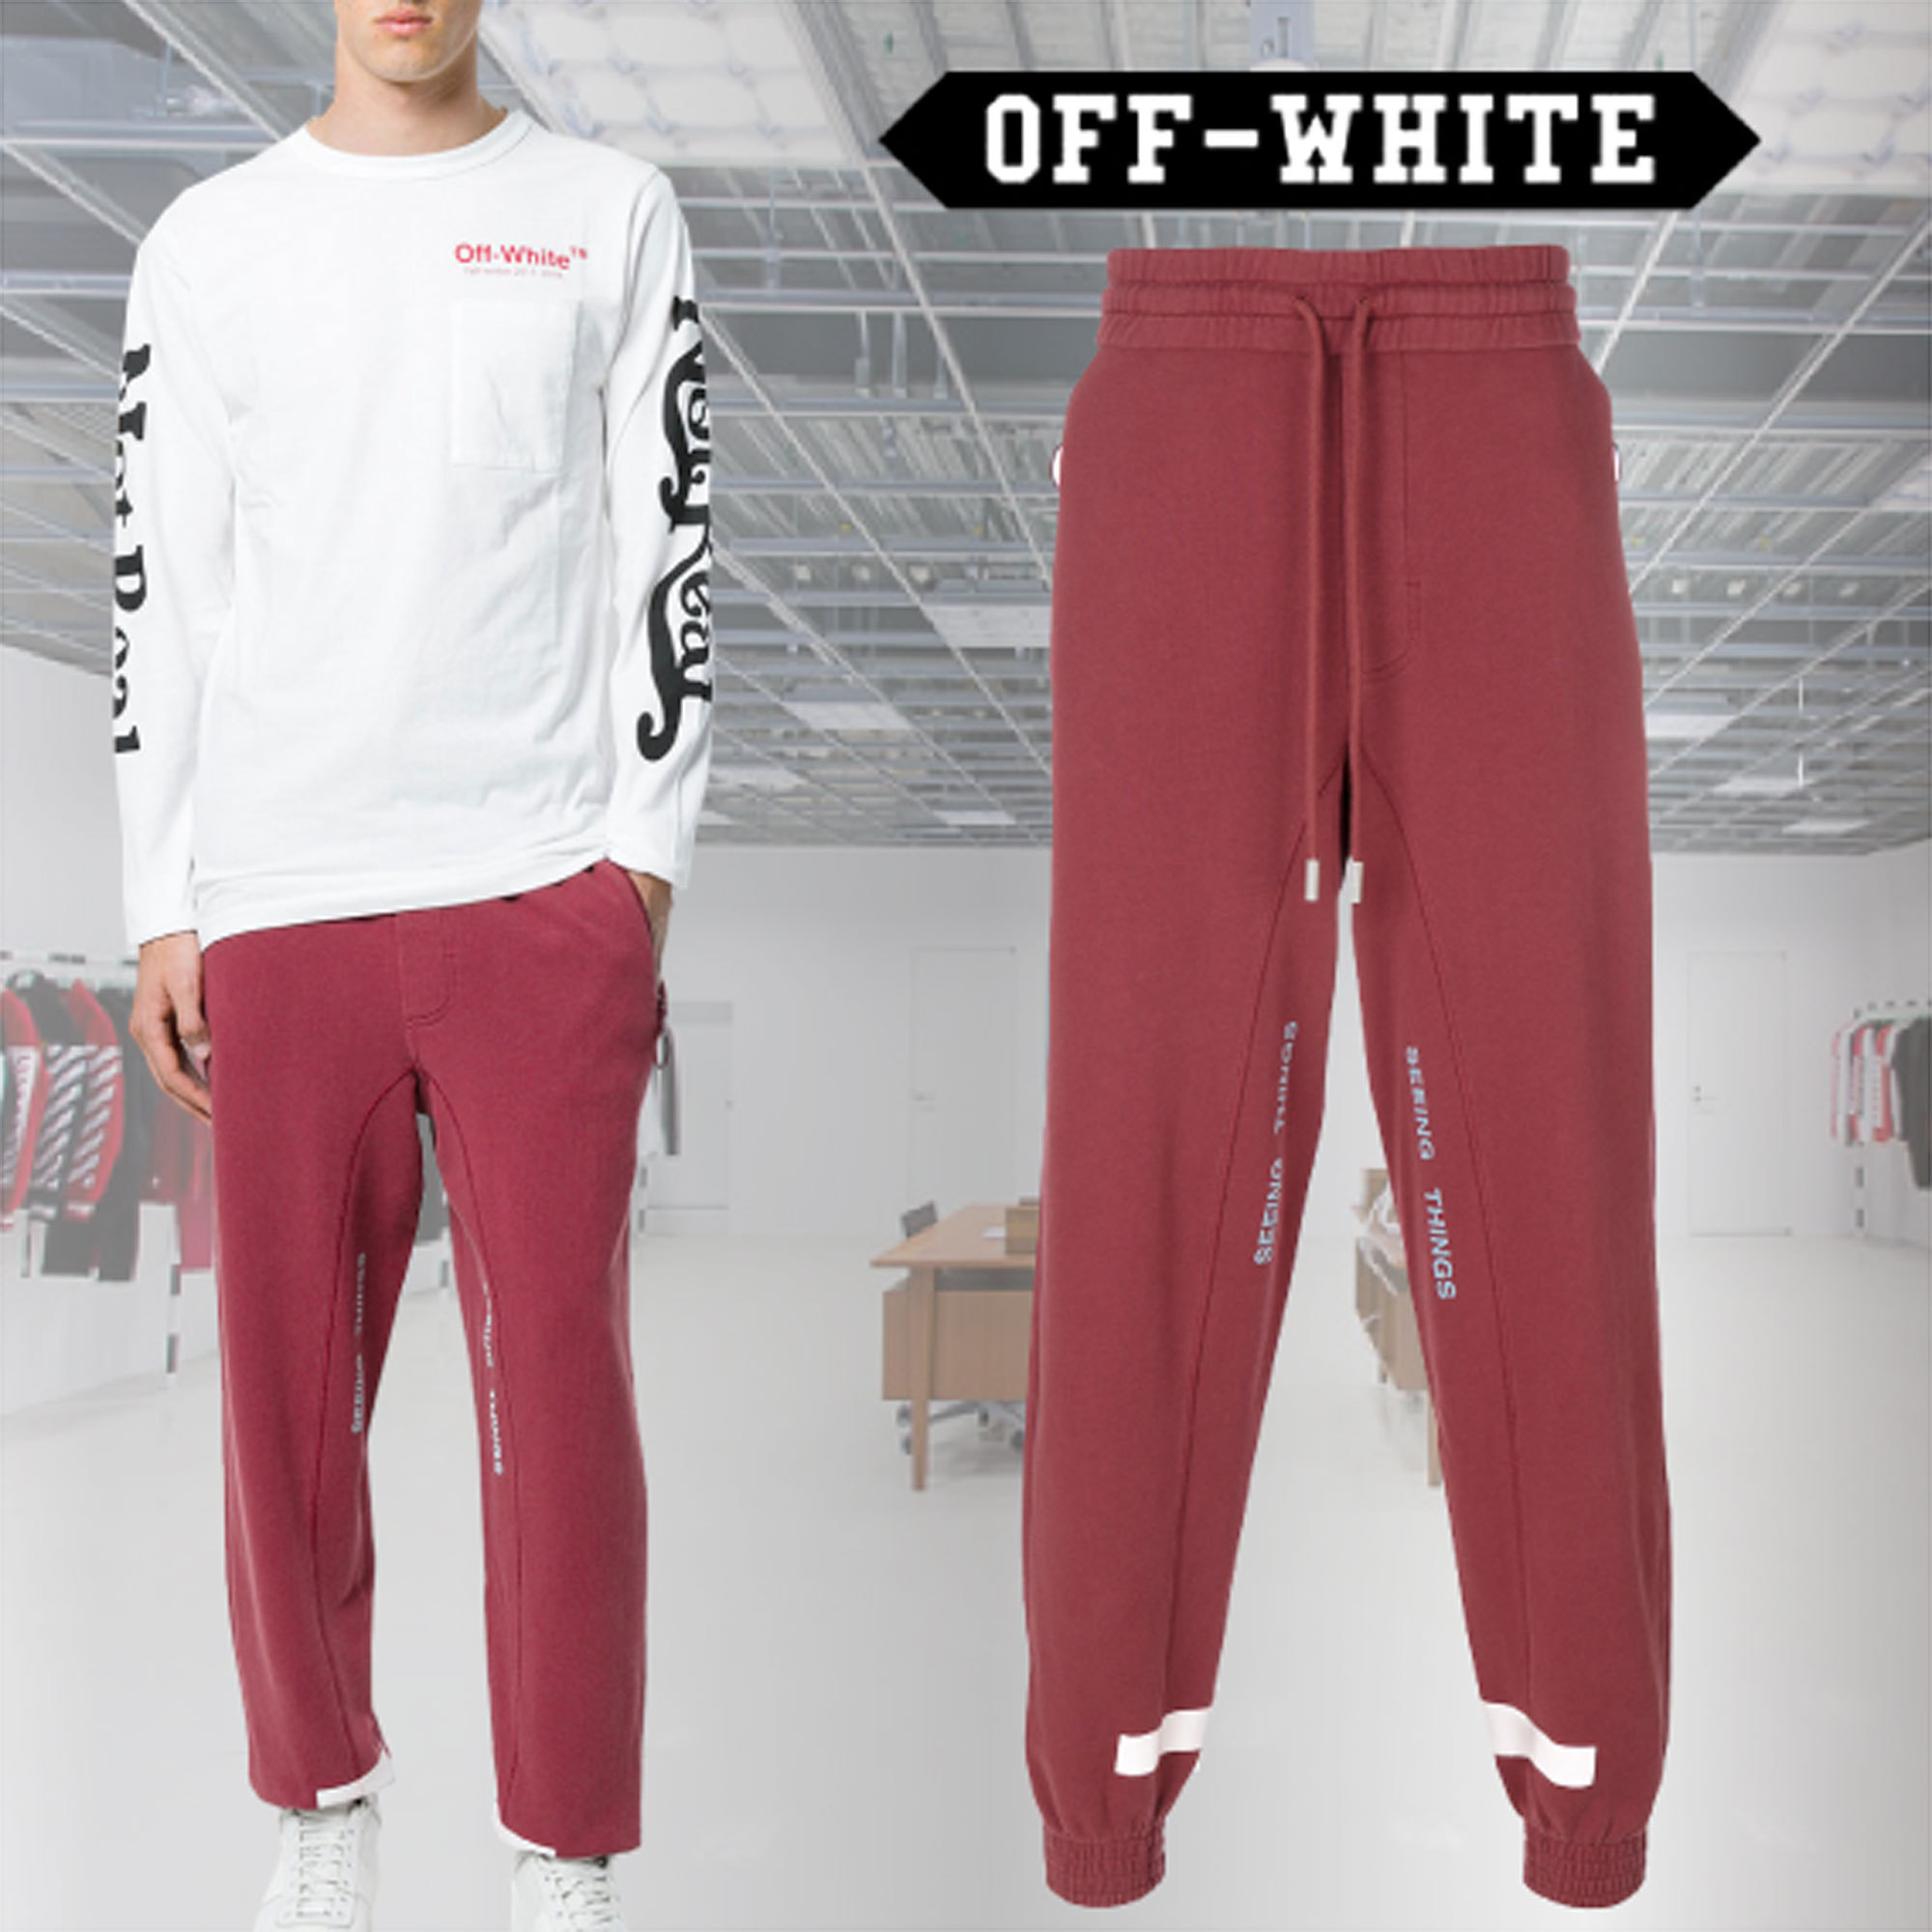 【17AW】Off-White / Seeing Things スウェットパンツ / レッド